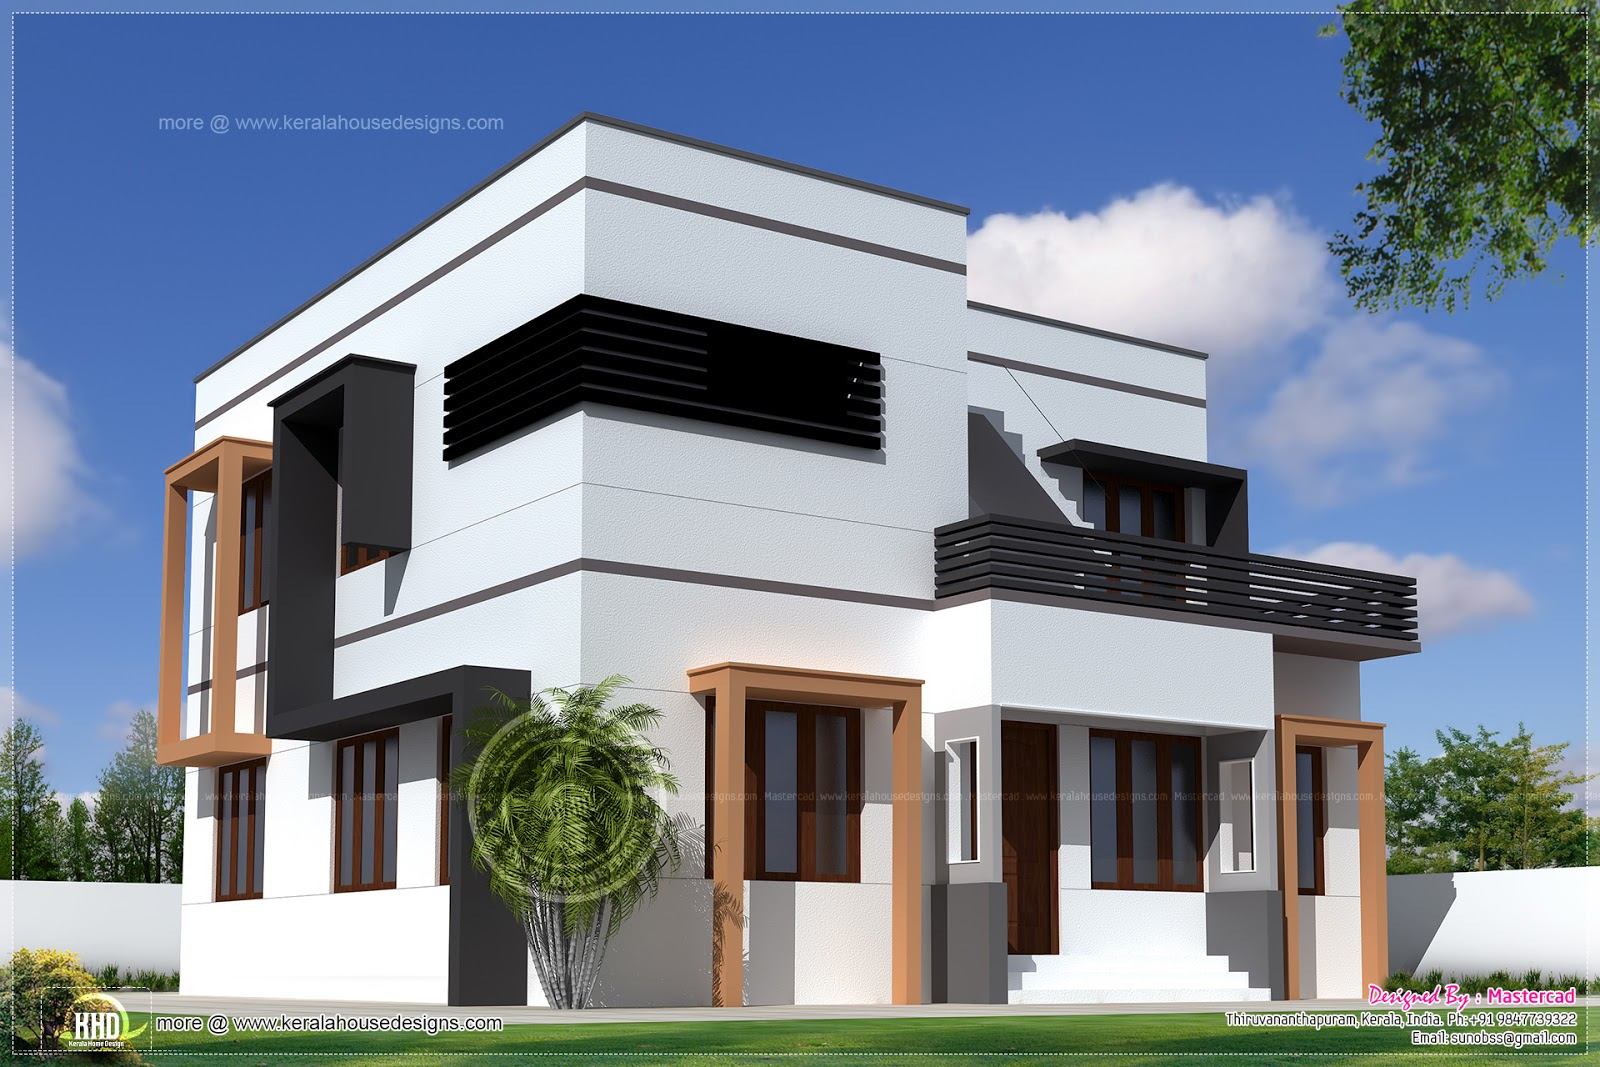 1627 square feet modern villa exterior house design plans for Modern villa design